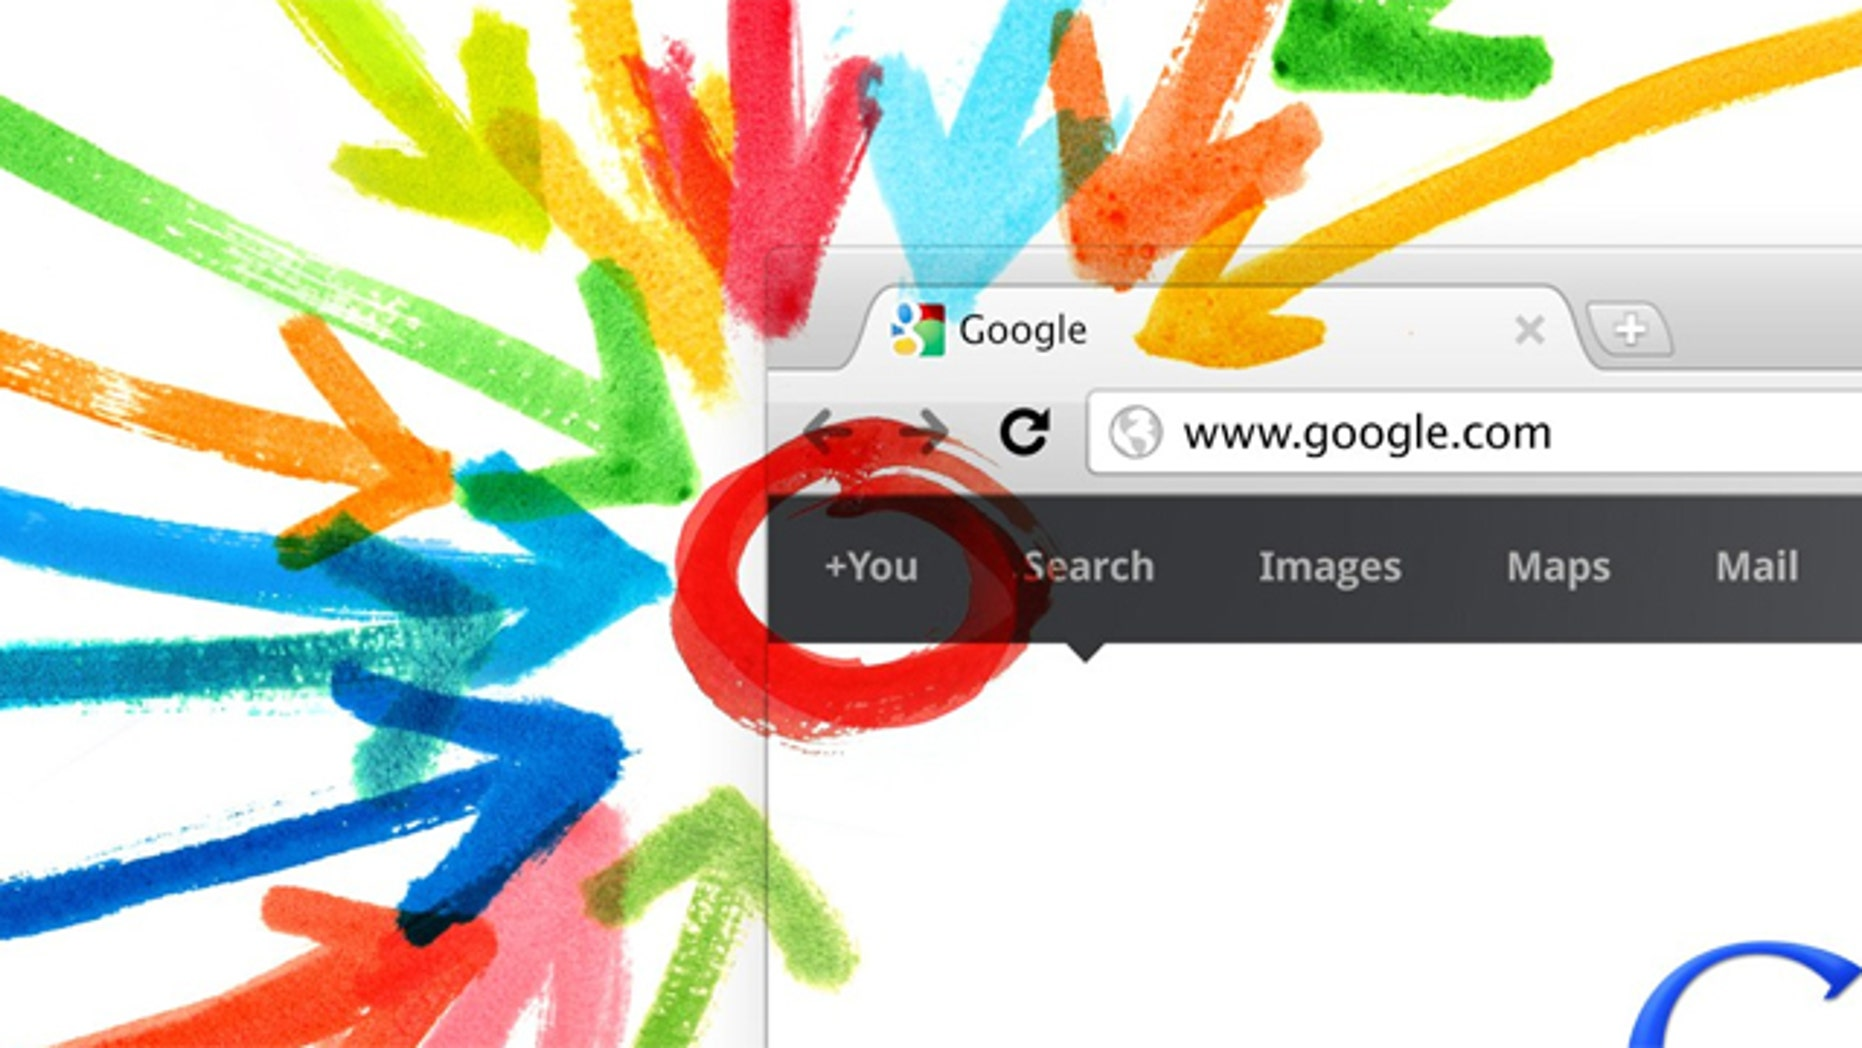 Are people actually using Google+?